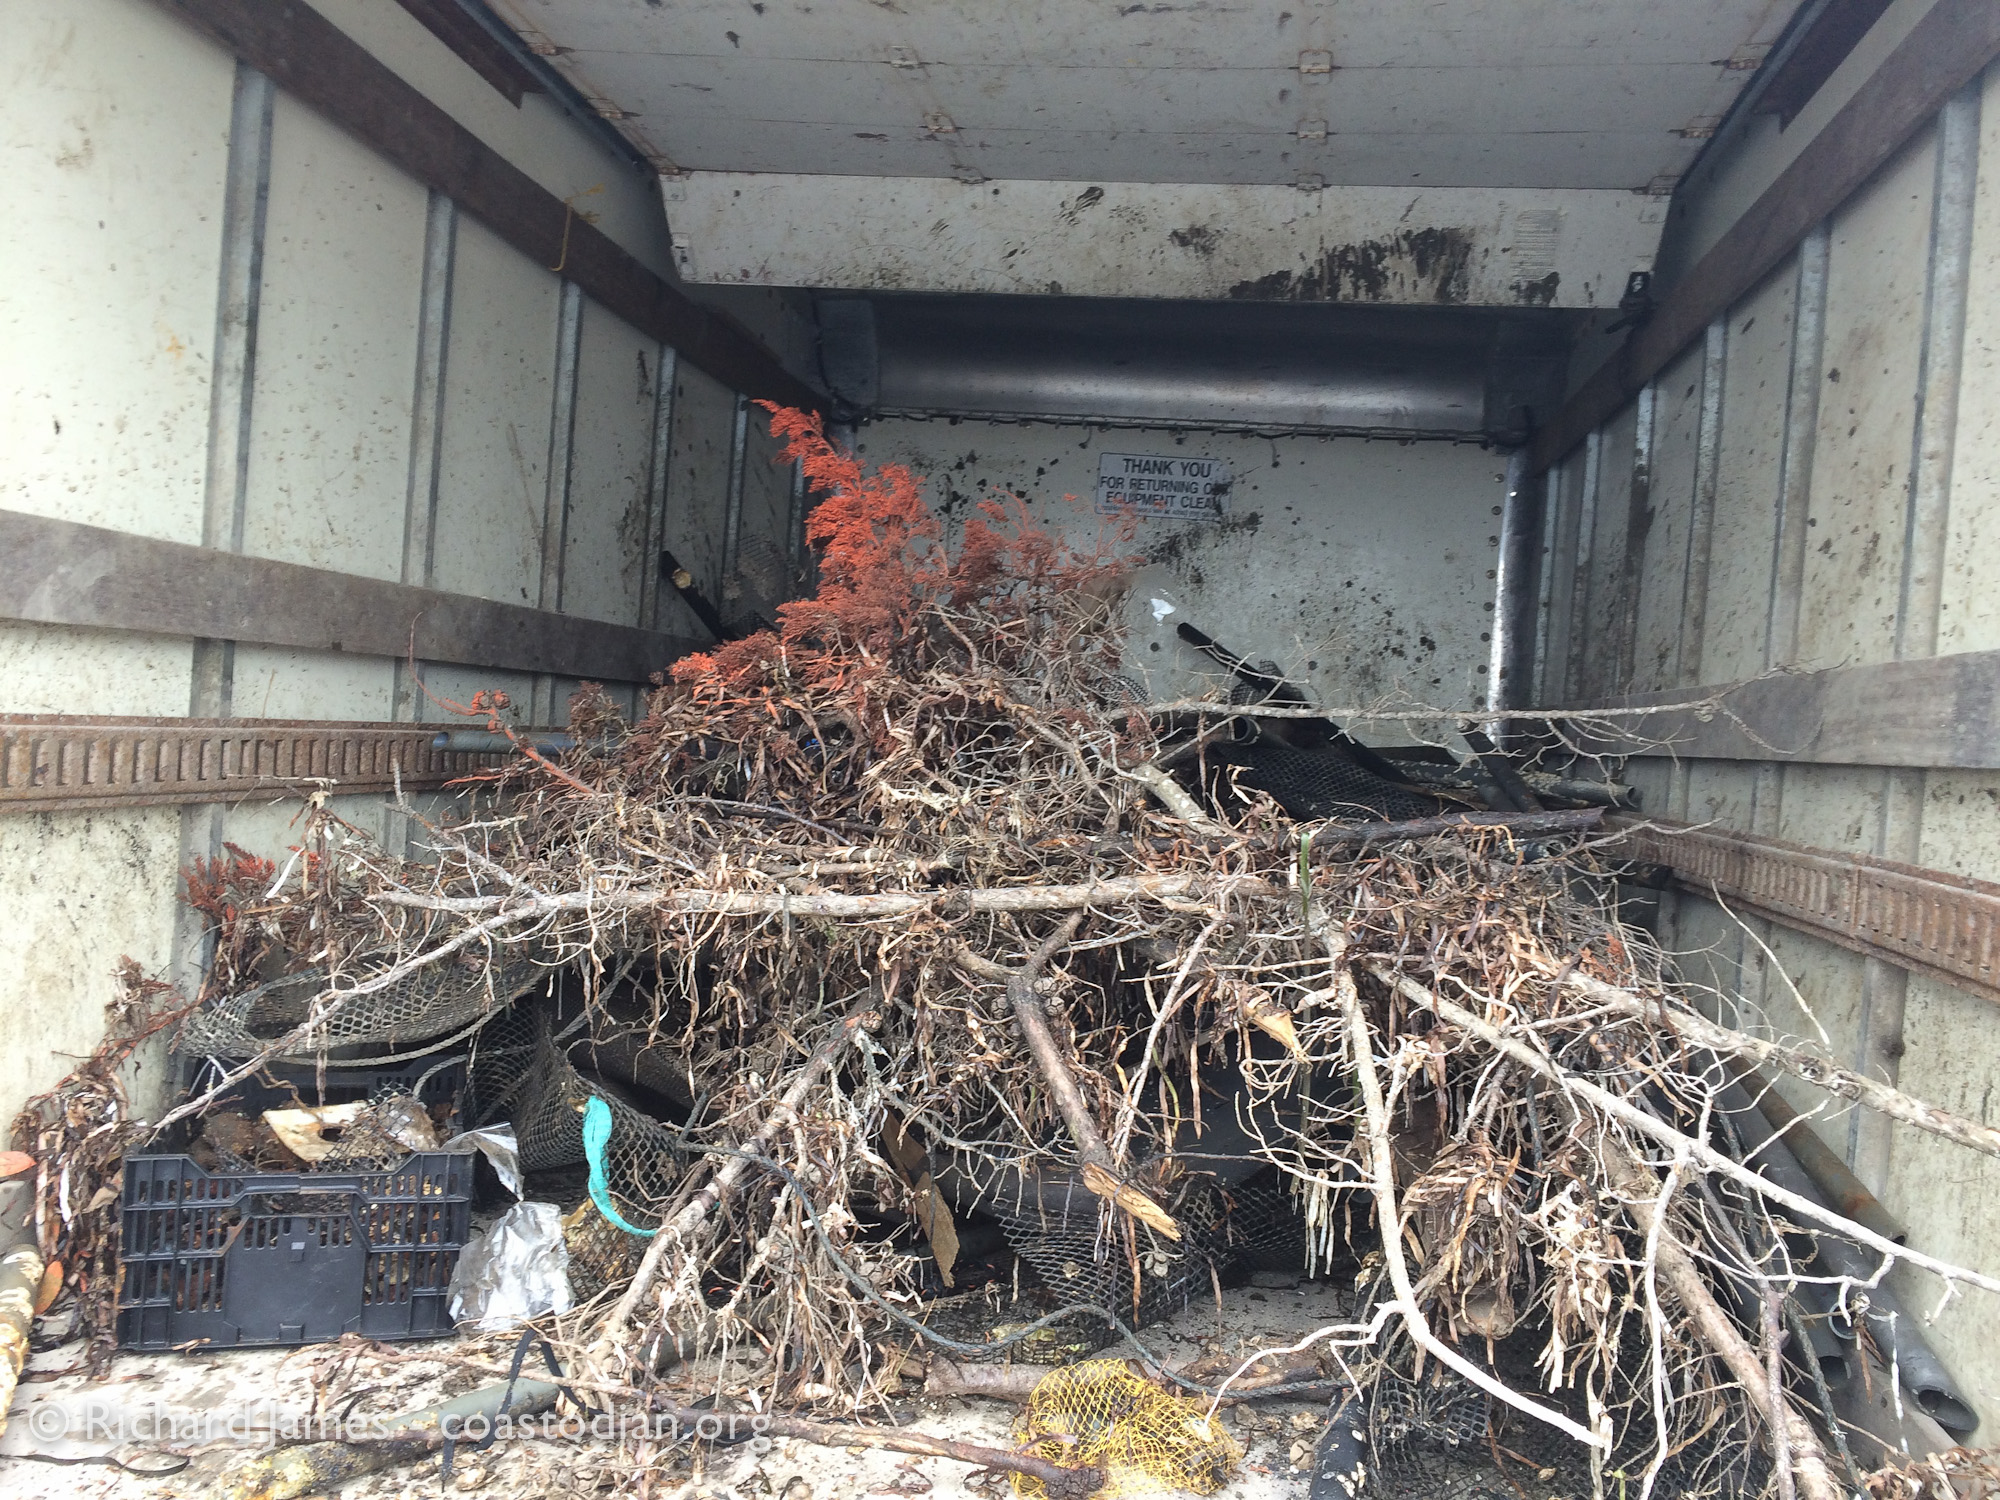 Truck full of Tomales Bay Oyster Company trash no longer creating an eyesore in the bay, nor a risk to wildlife.